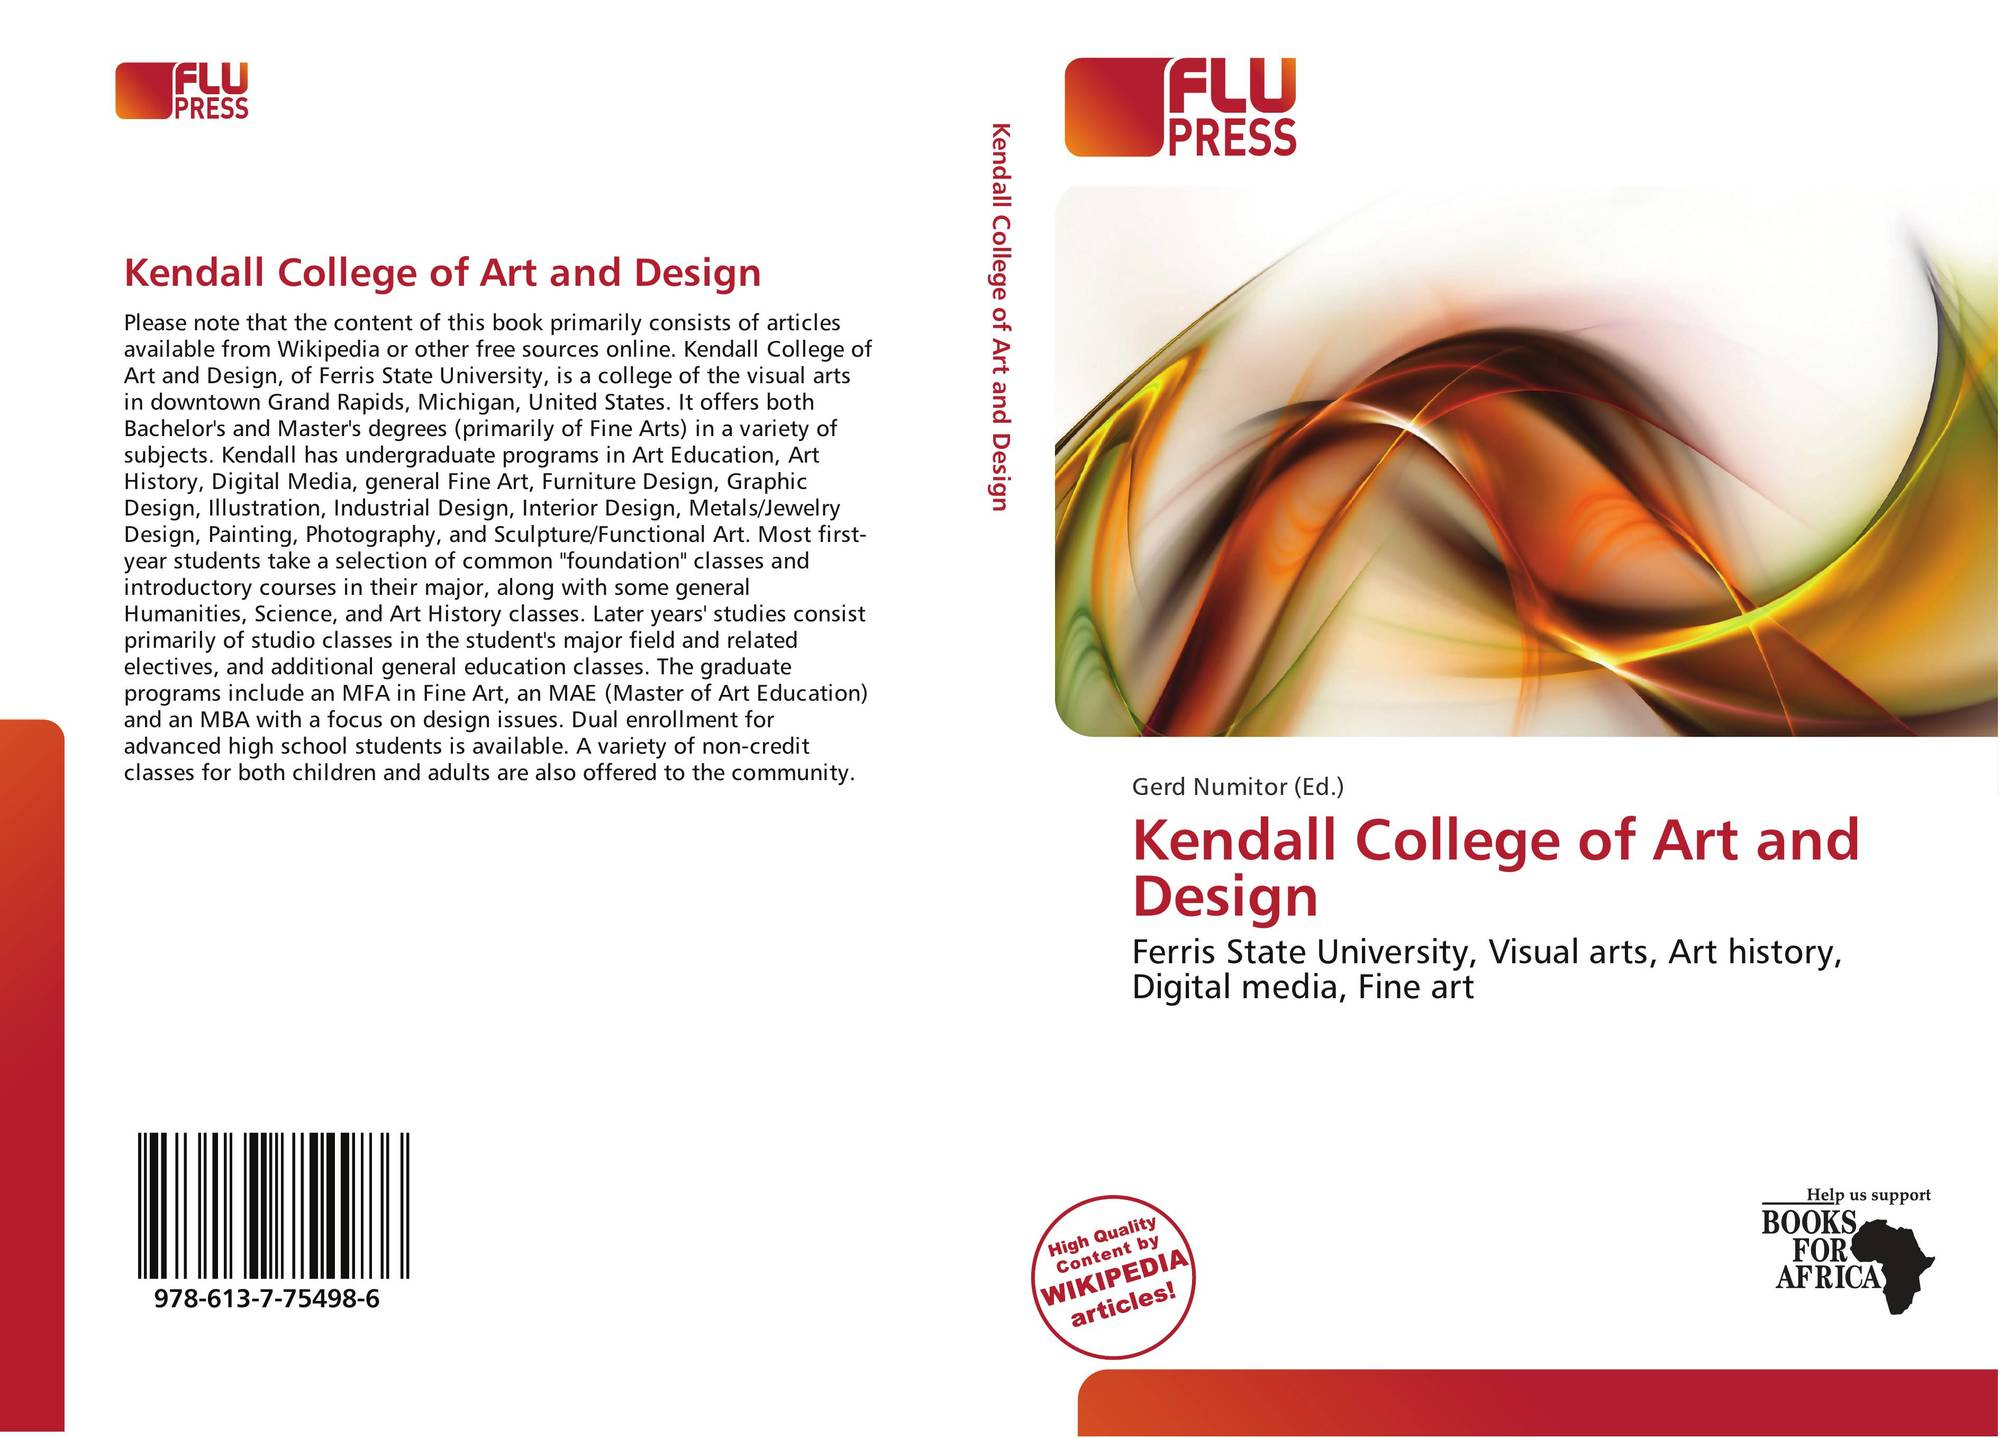 Kendall College Of Art And Design Of Ferris State University